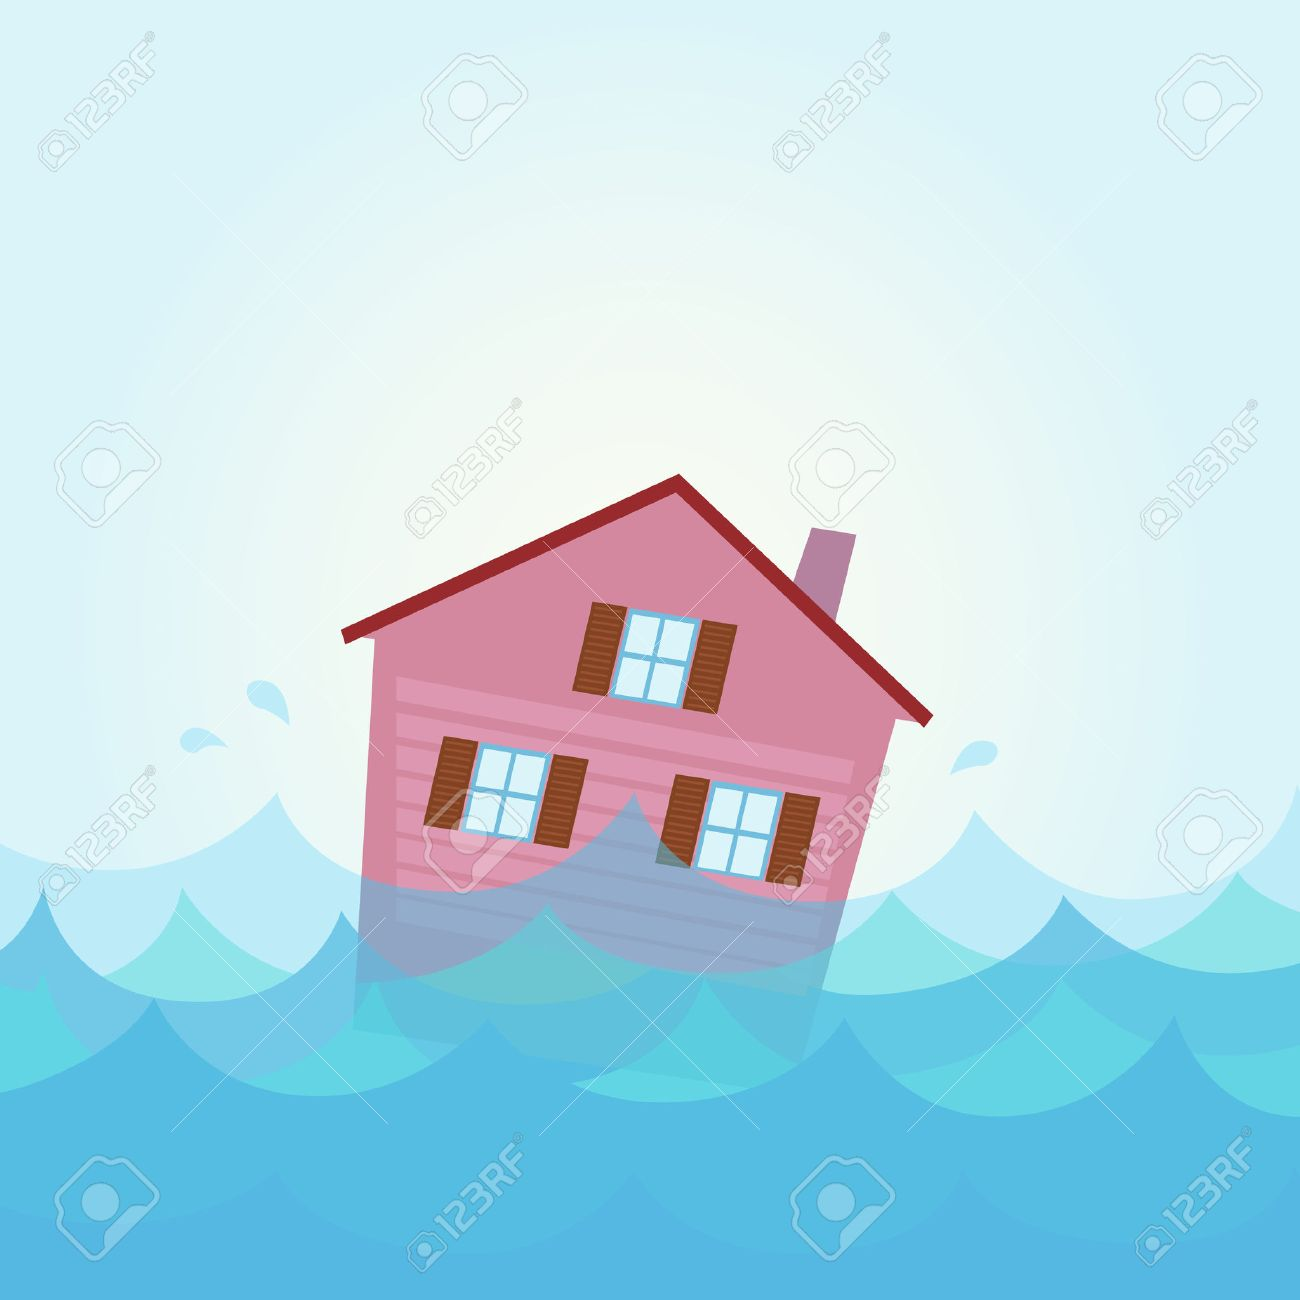 Nature disaster: House flood - home flooding under water. Illustration of house flood.  Illustration of sinking house in the river / lake in cartoon style. Stock Vector - 7127942